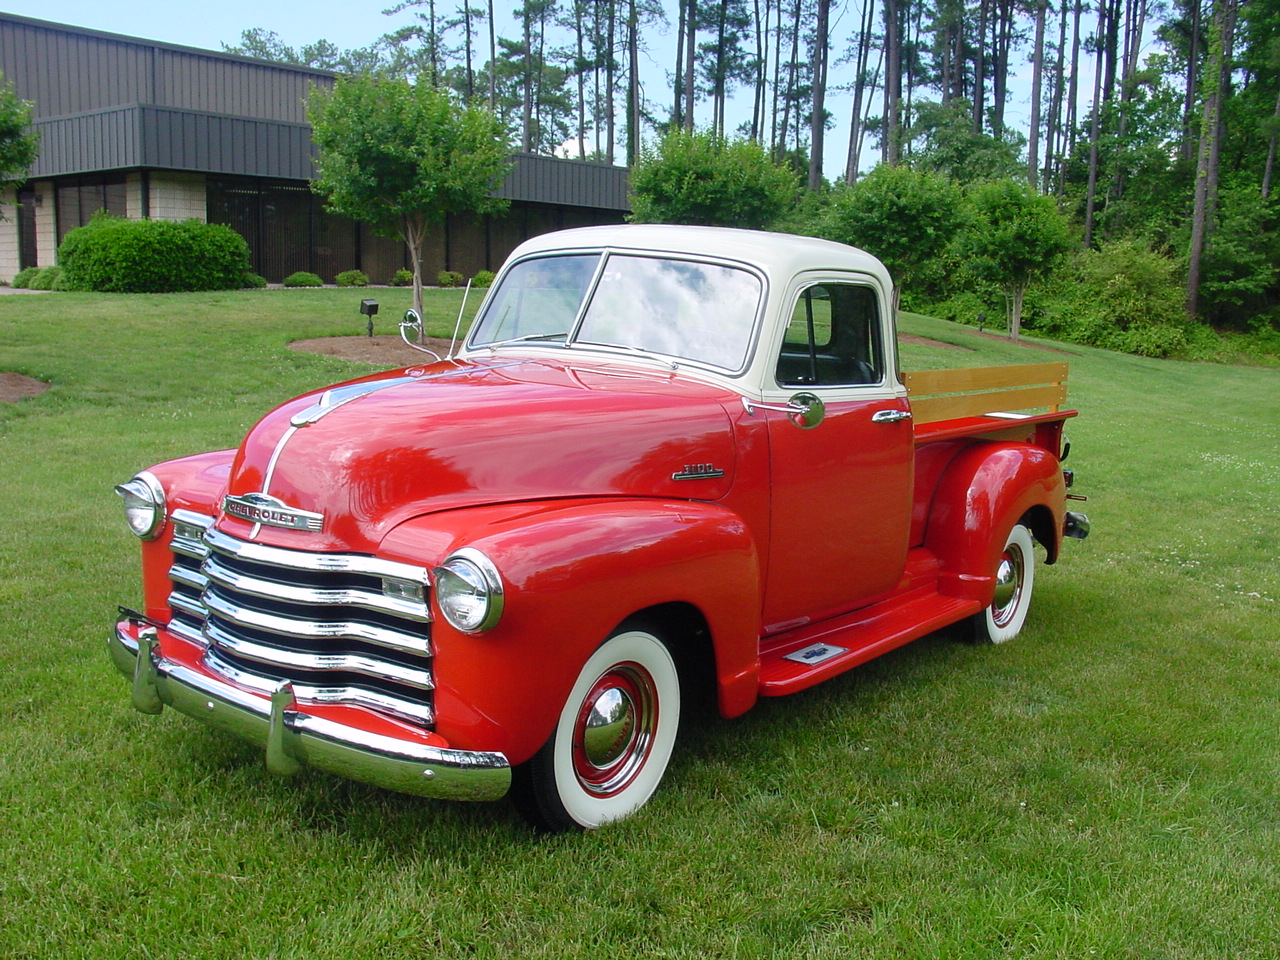 1953 chevy truck for sale in oklahoma cheap trucks for sale